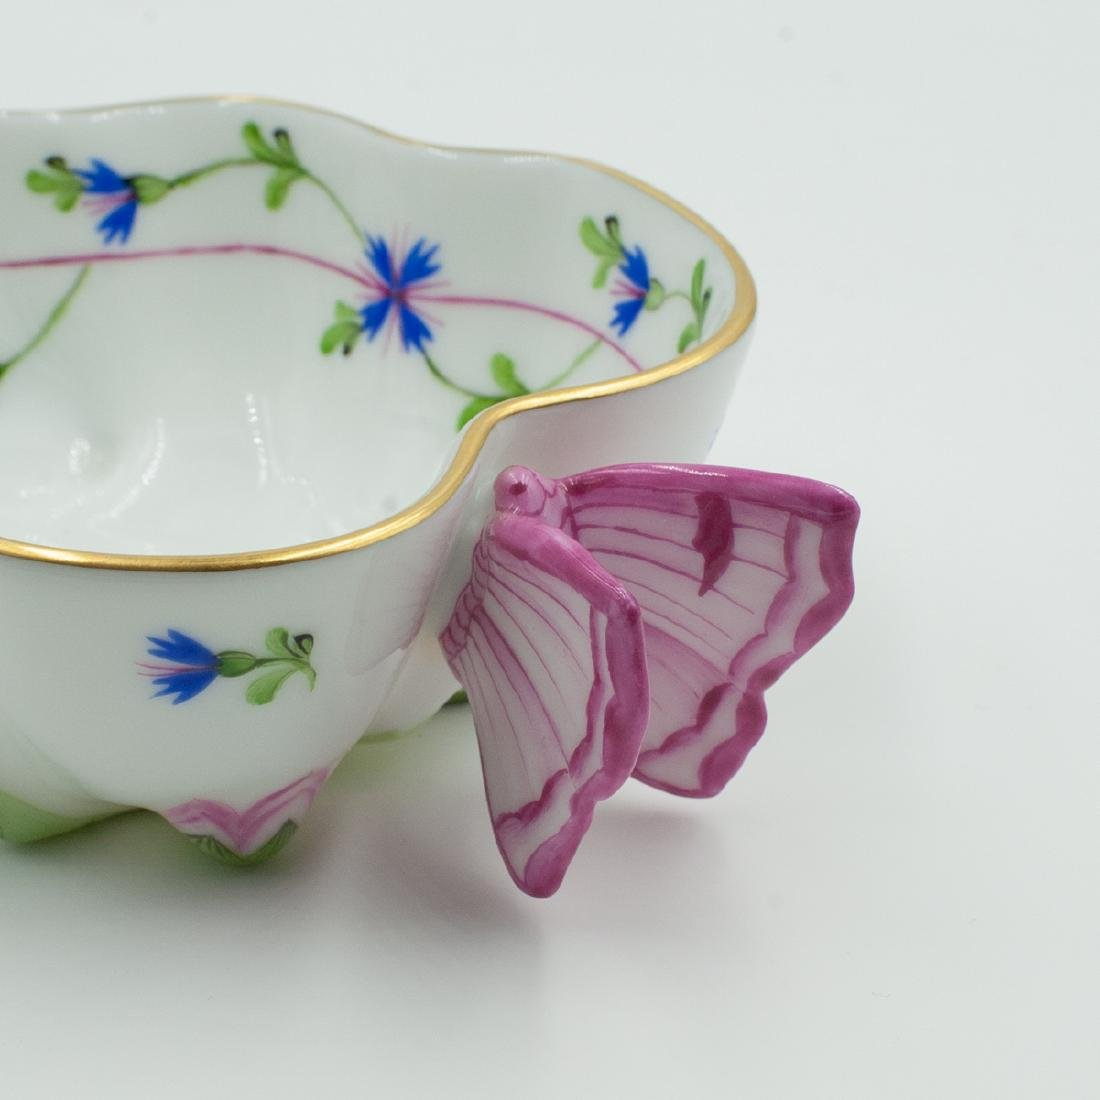 Herend Porcelain Leaf Dish - 2